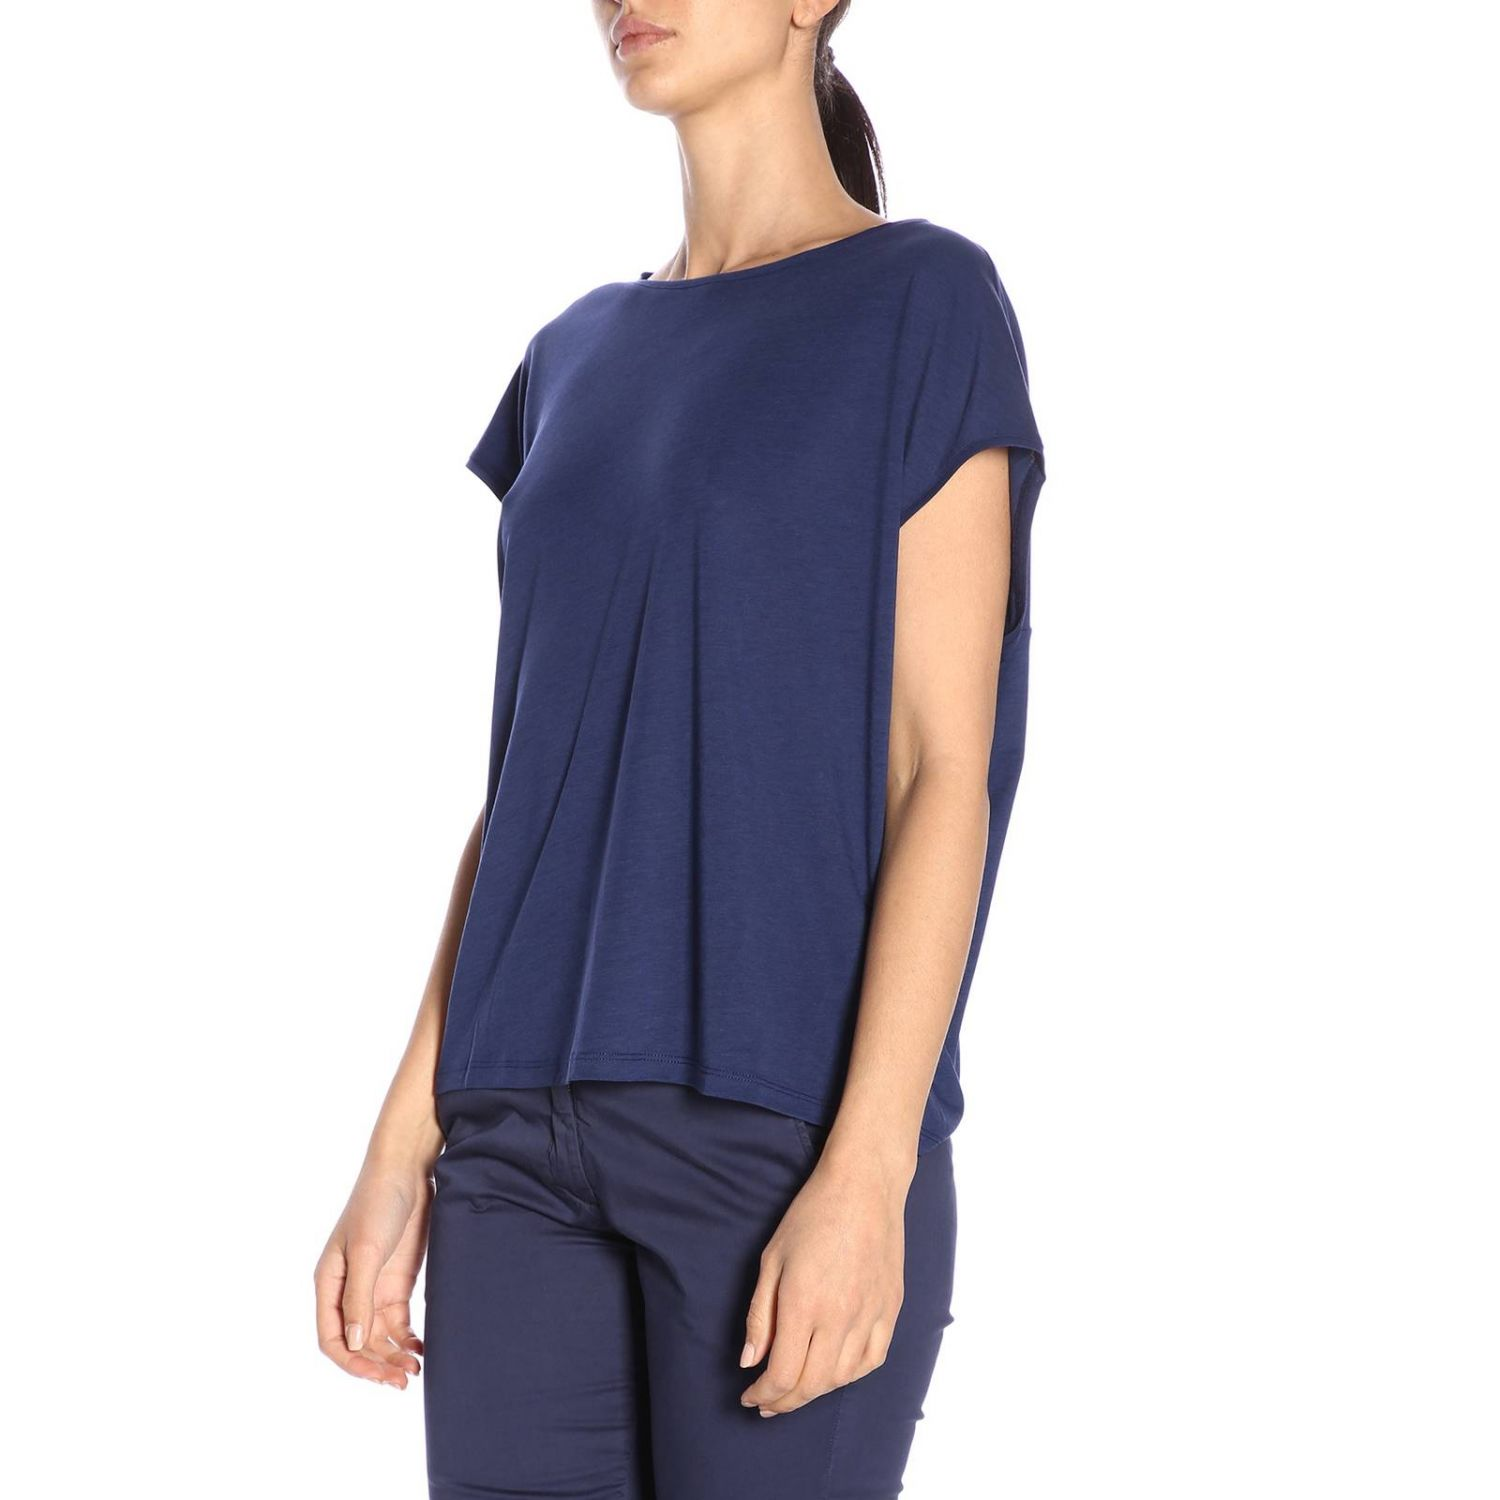 Camiseta mujer Woolrich azul oscuro 2